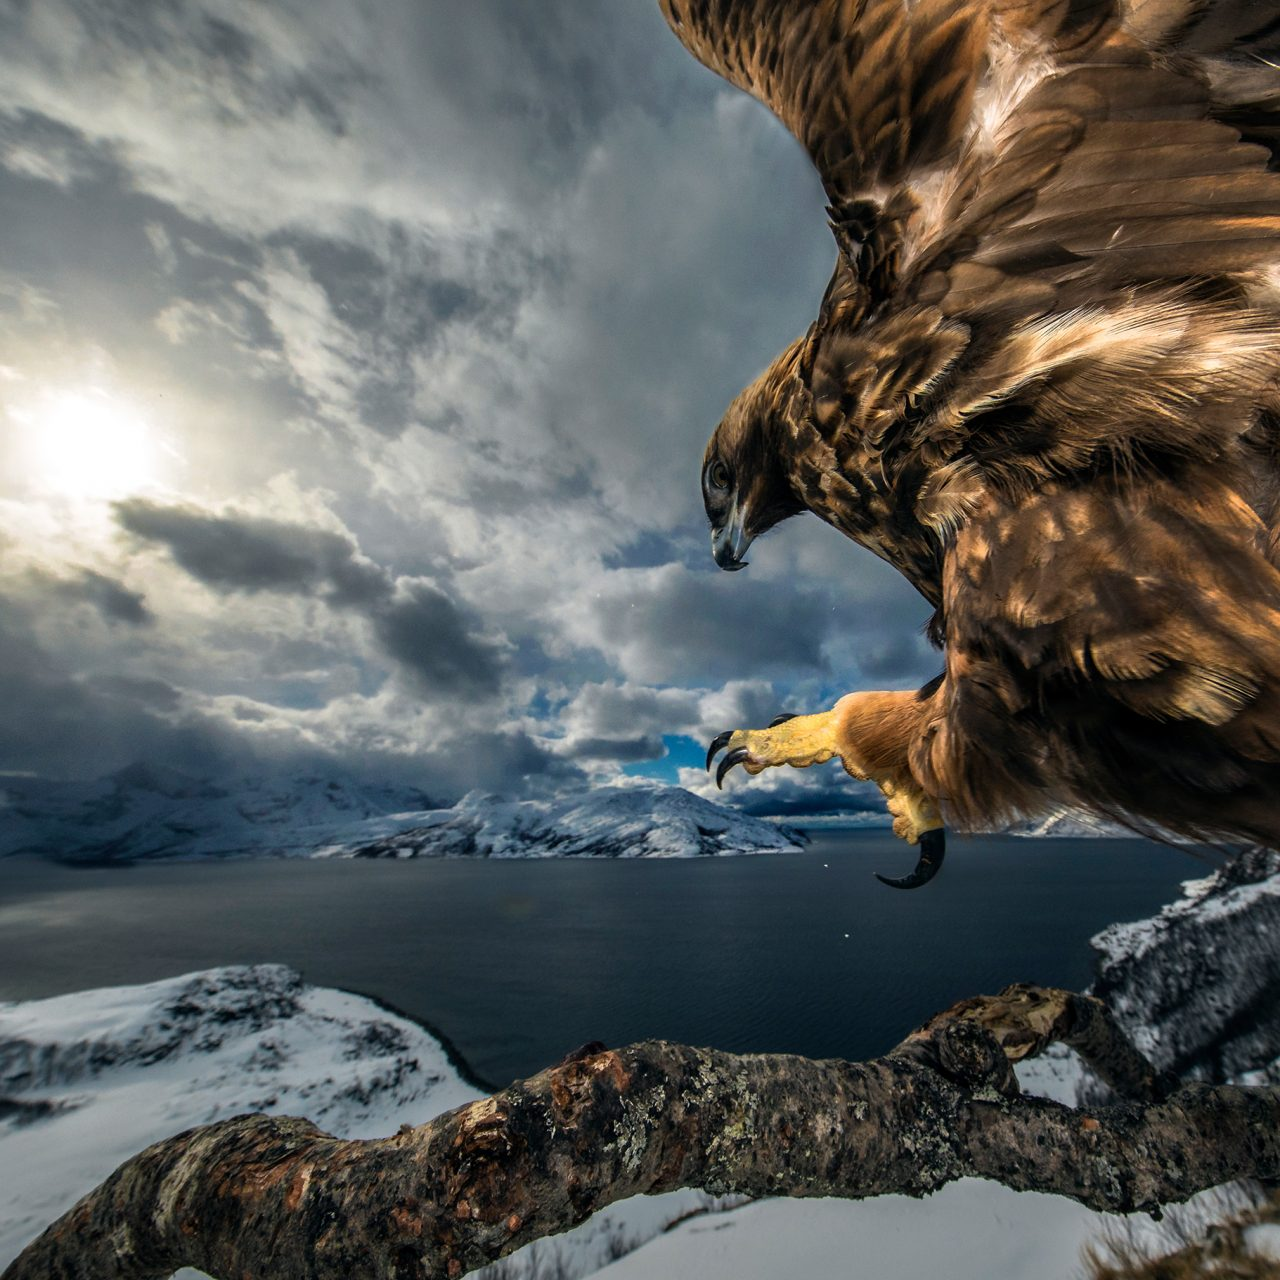 Wildlife Photographer of the Year 2019 Results Announced